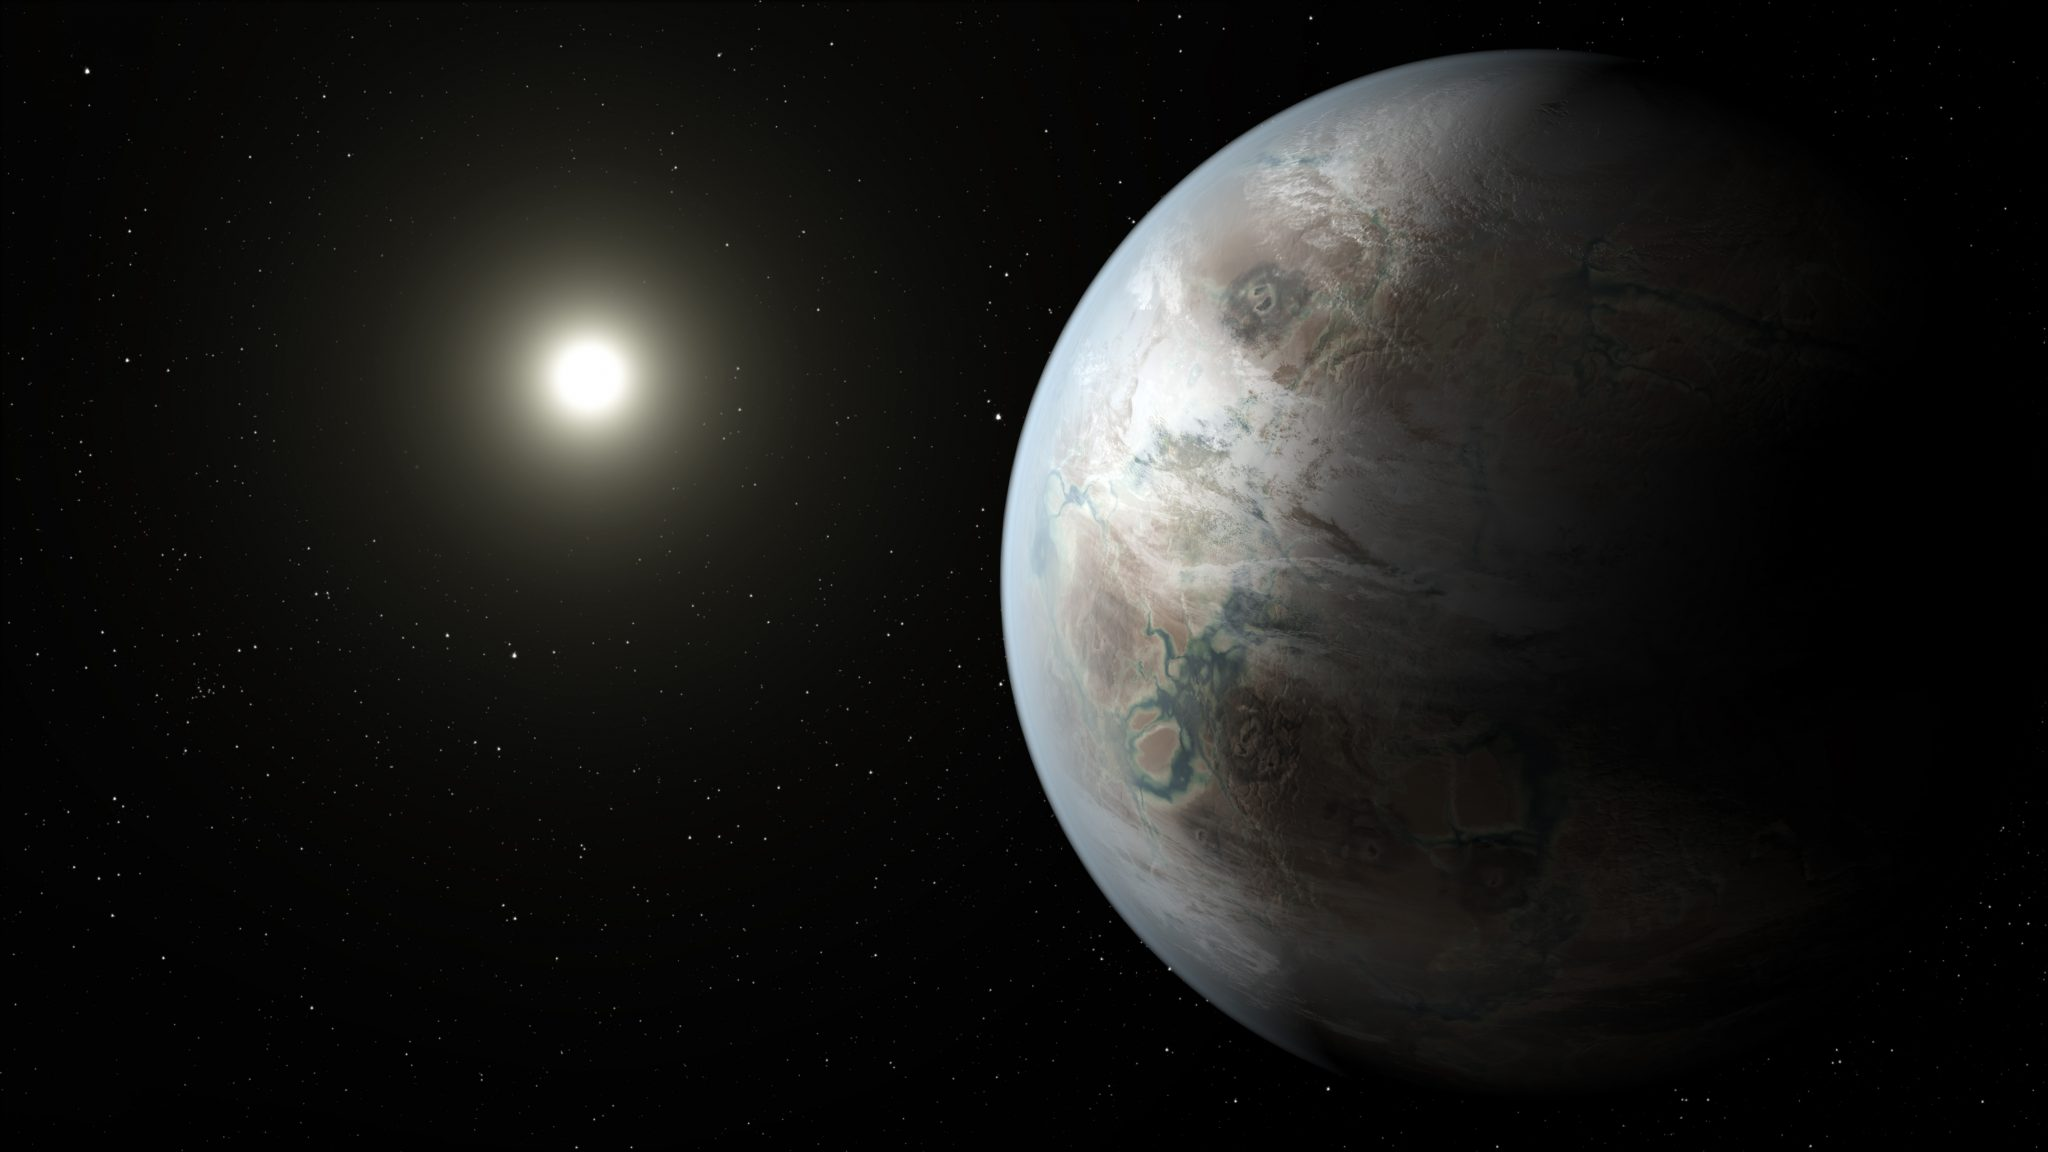 kepler space telescope discovers 10 new potentially